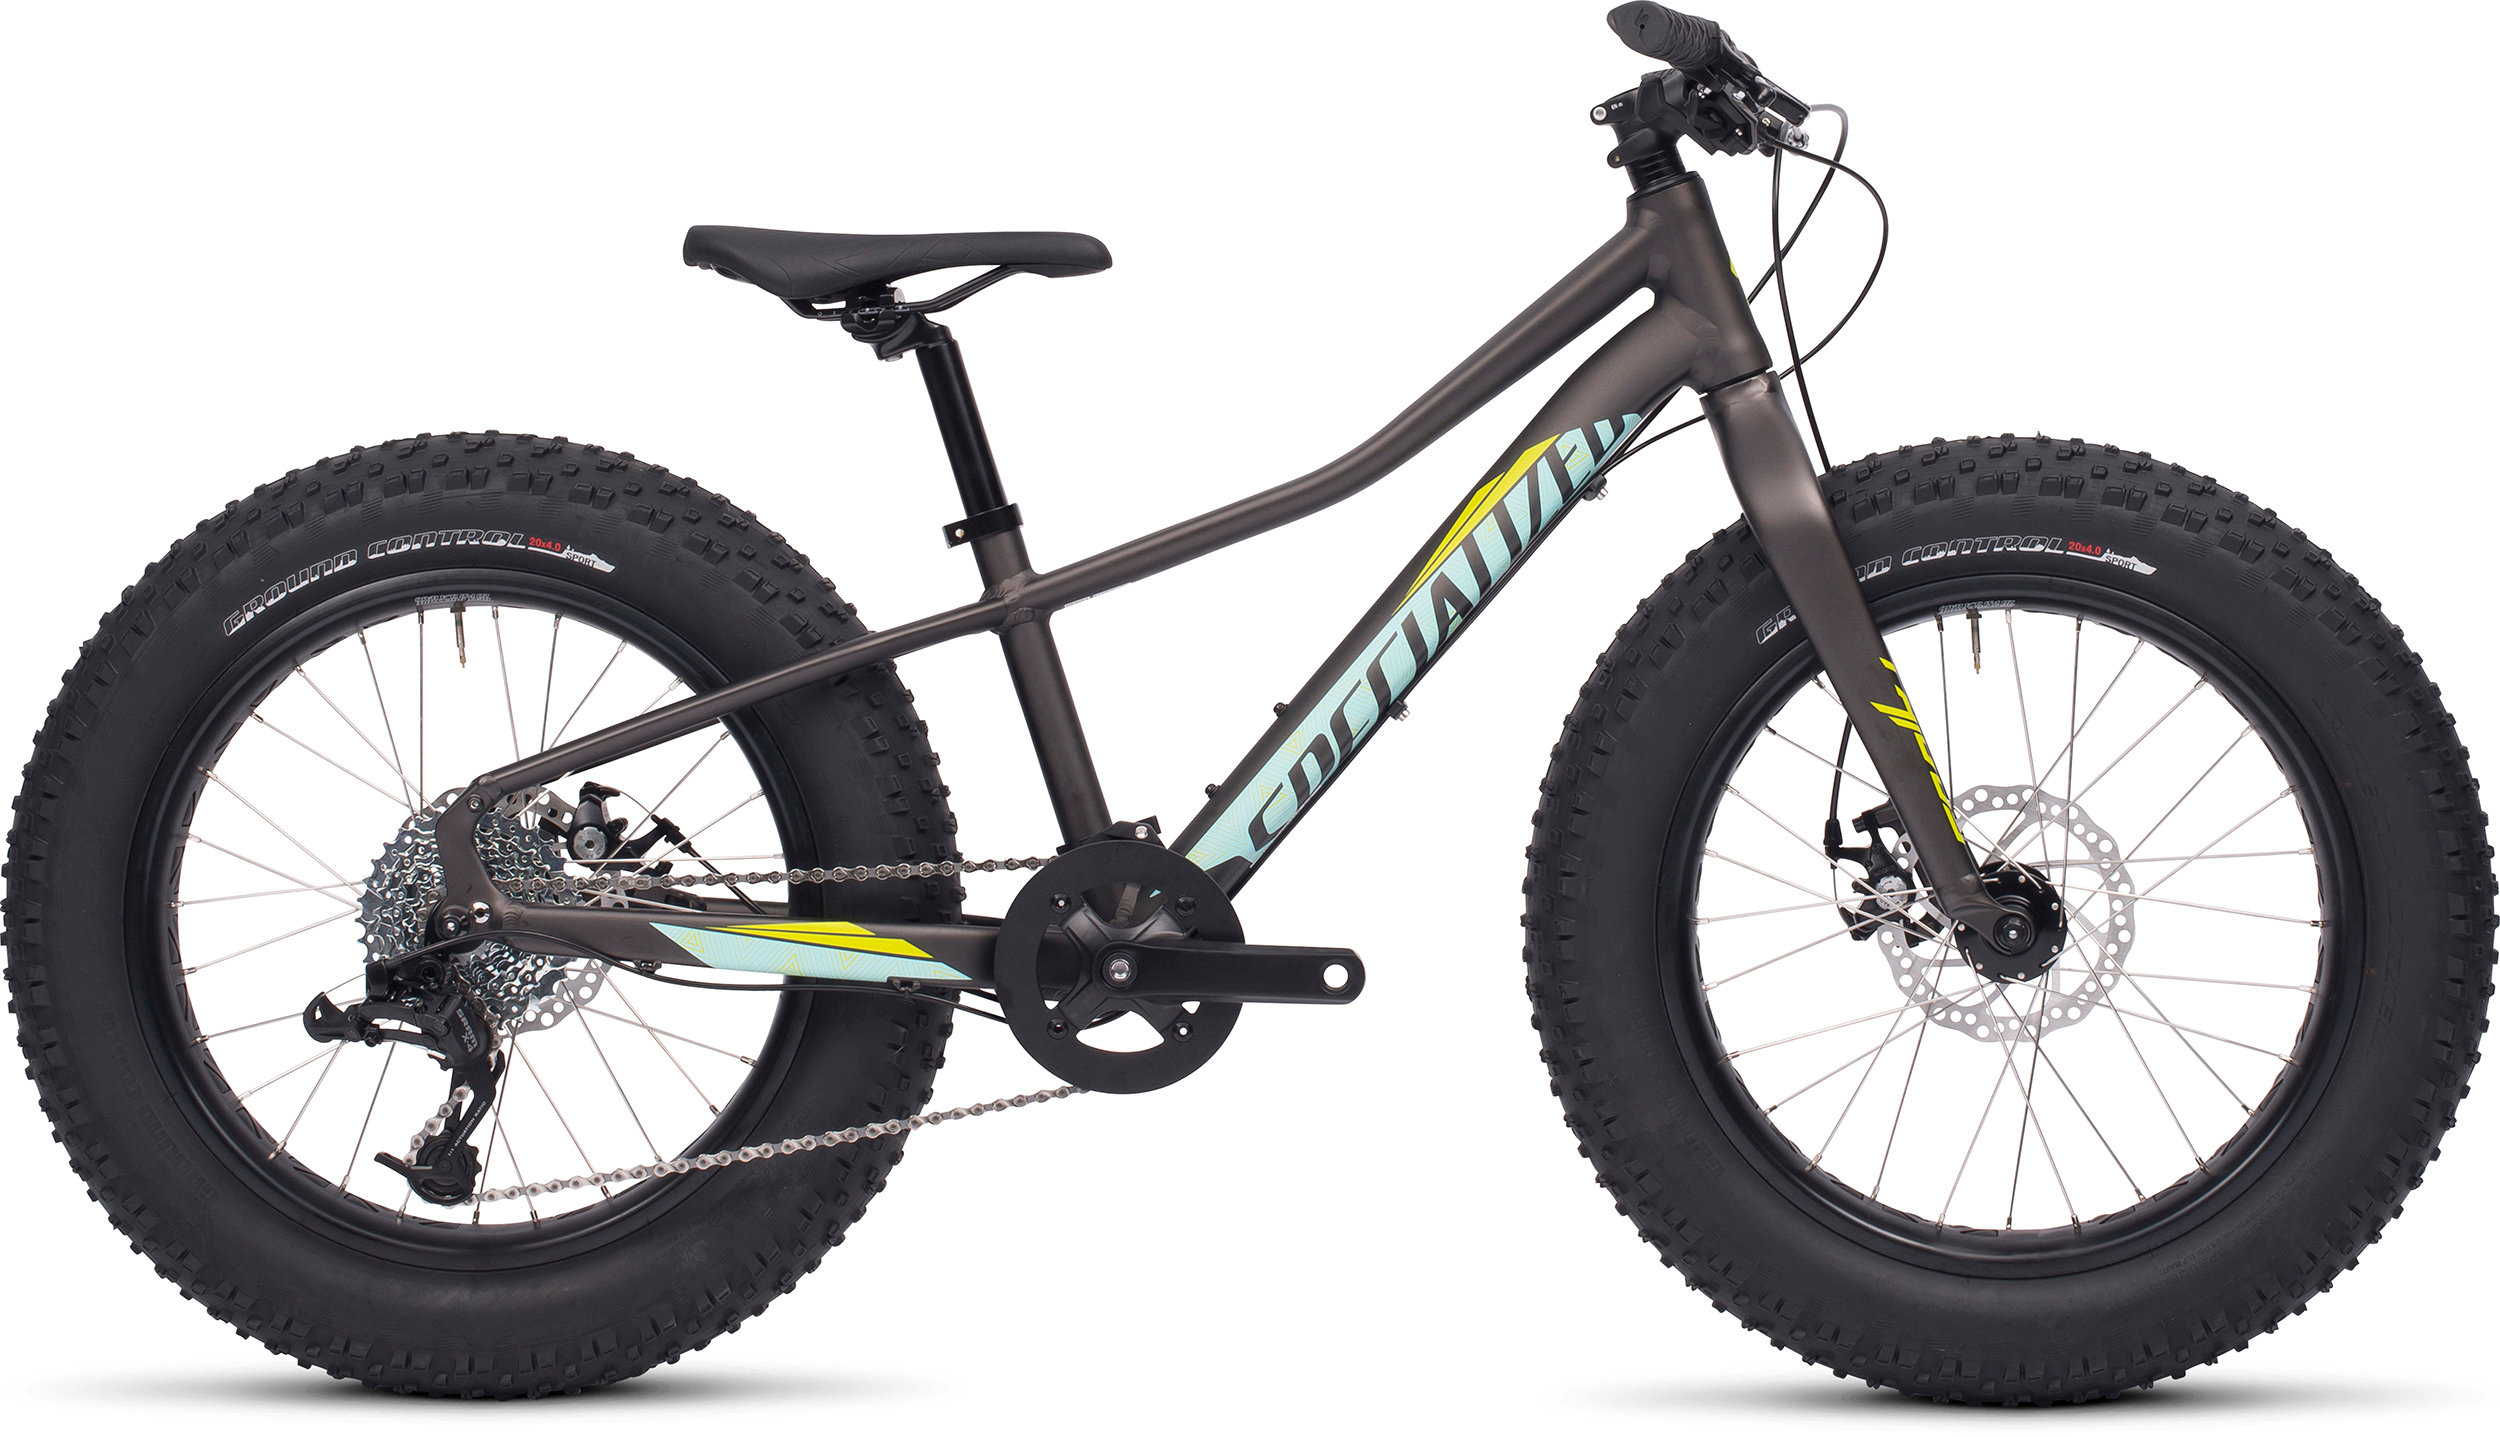 SPECIALIZED FATBOY 20 CHAR/TEAL/HYP GRN 11 - Bike Maniac